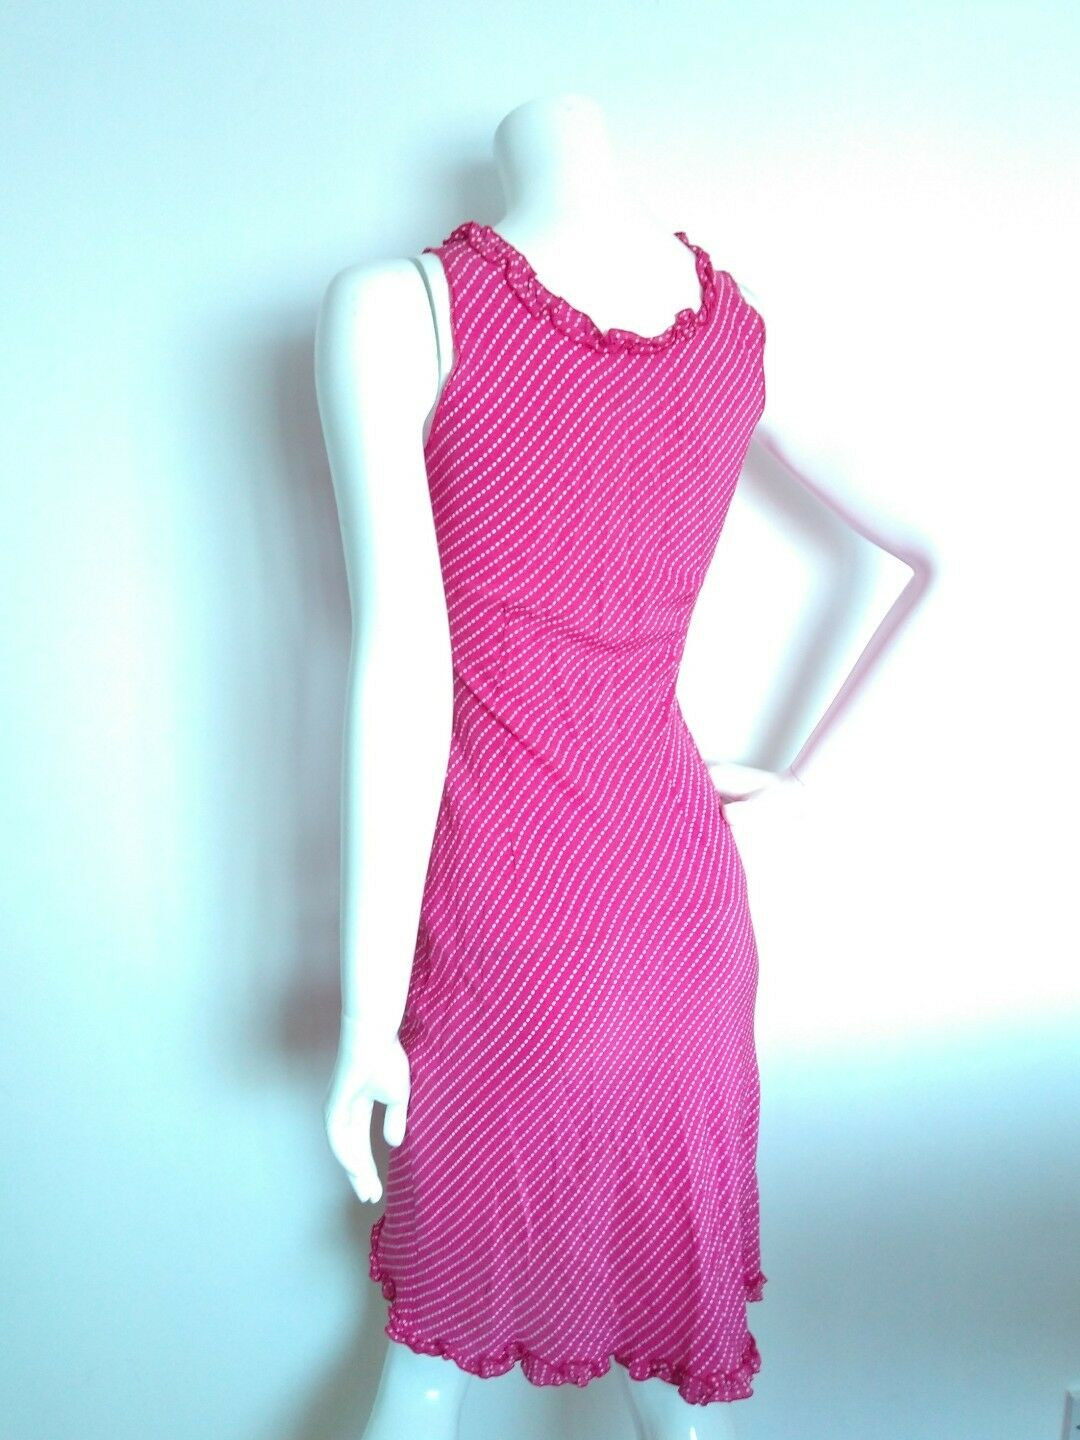 Designer LK BENNET slip-on Silk dress dress dress size S --USED ONCE--100%Silk pink polkadot c85eb9